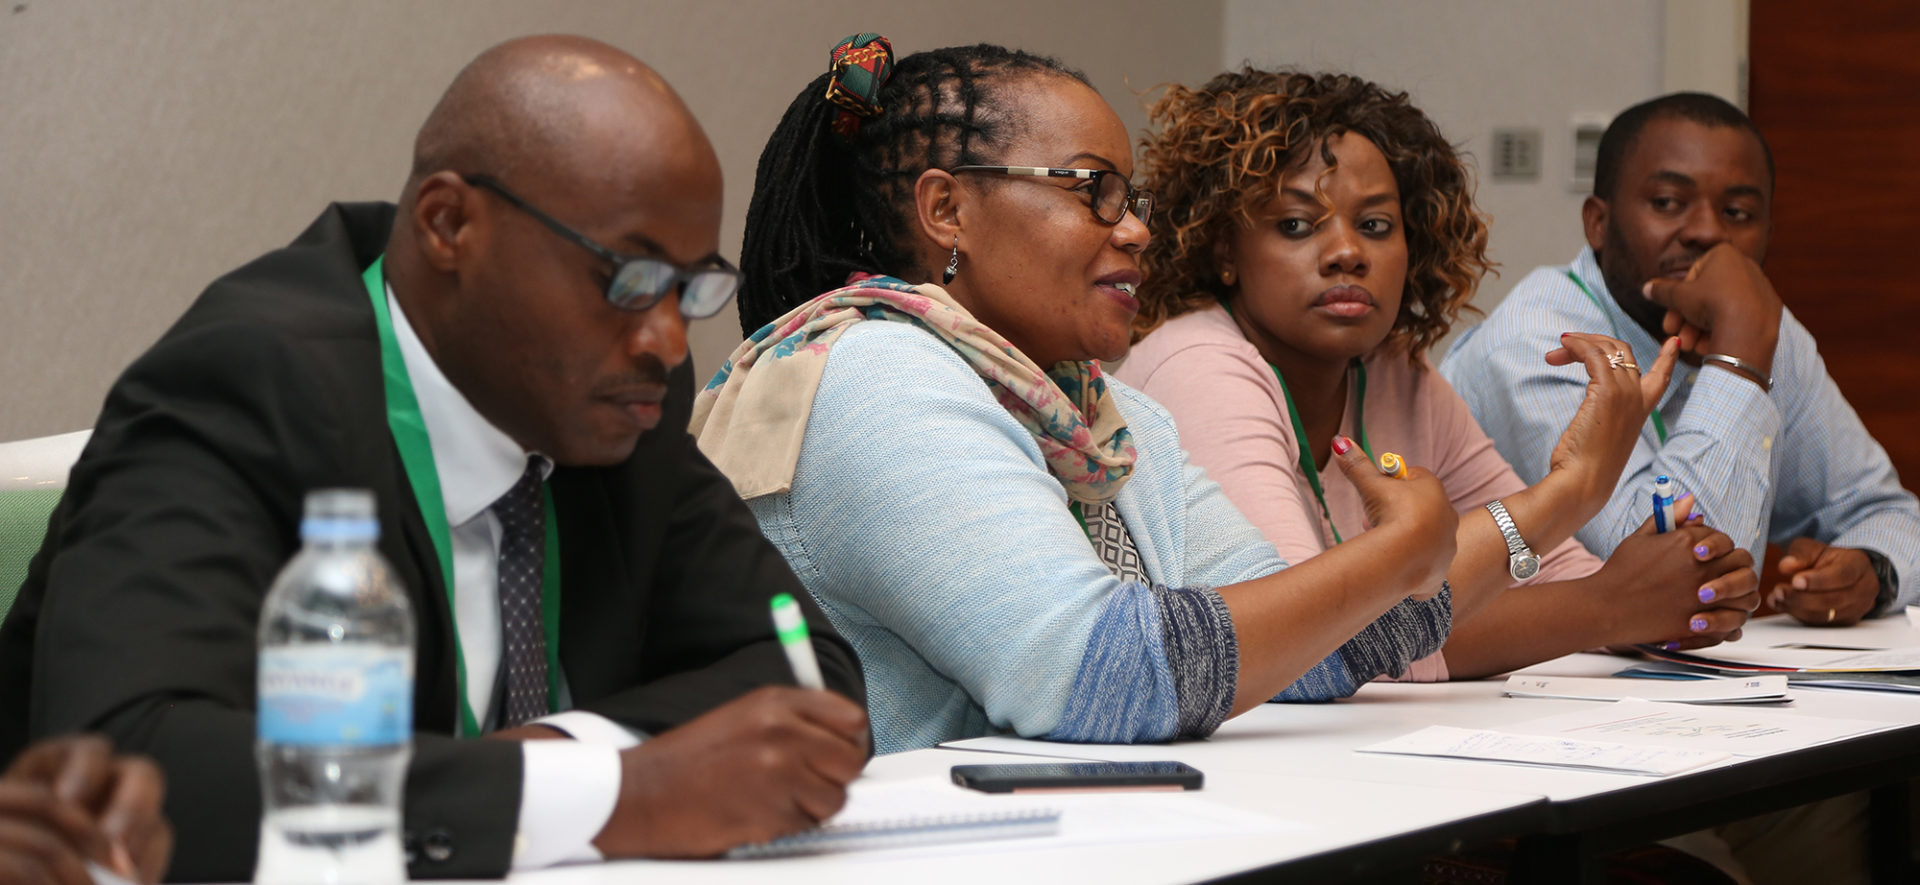 The first African Dialogue on The World in 2050 (TWI2050) took place in Kigali, Rwanda, in August 2017. Photo courtesy of SwedBio.